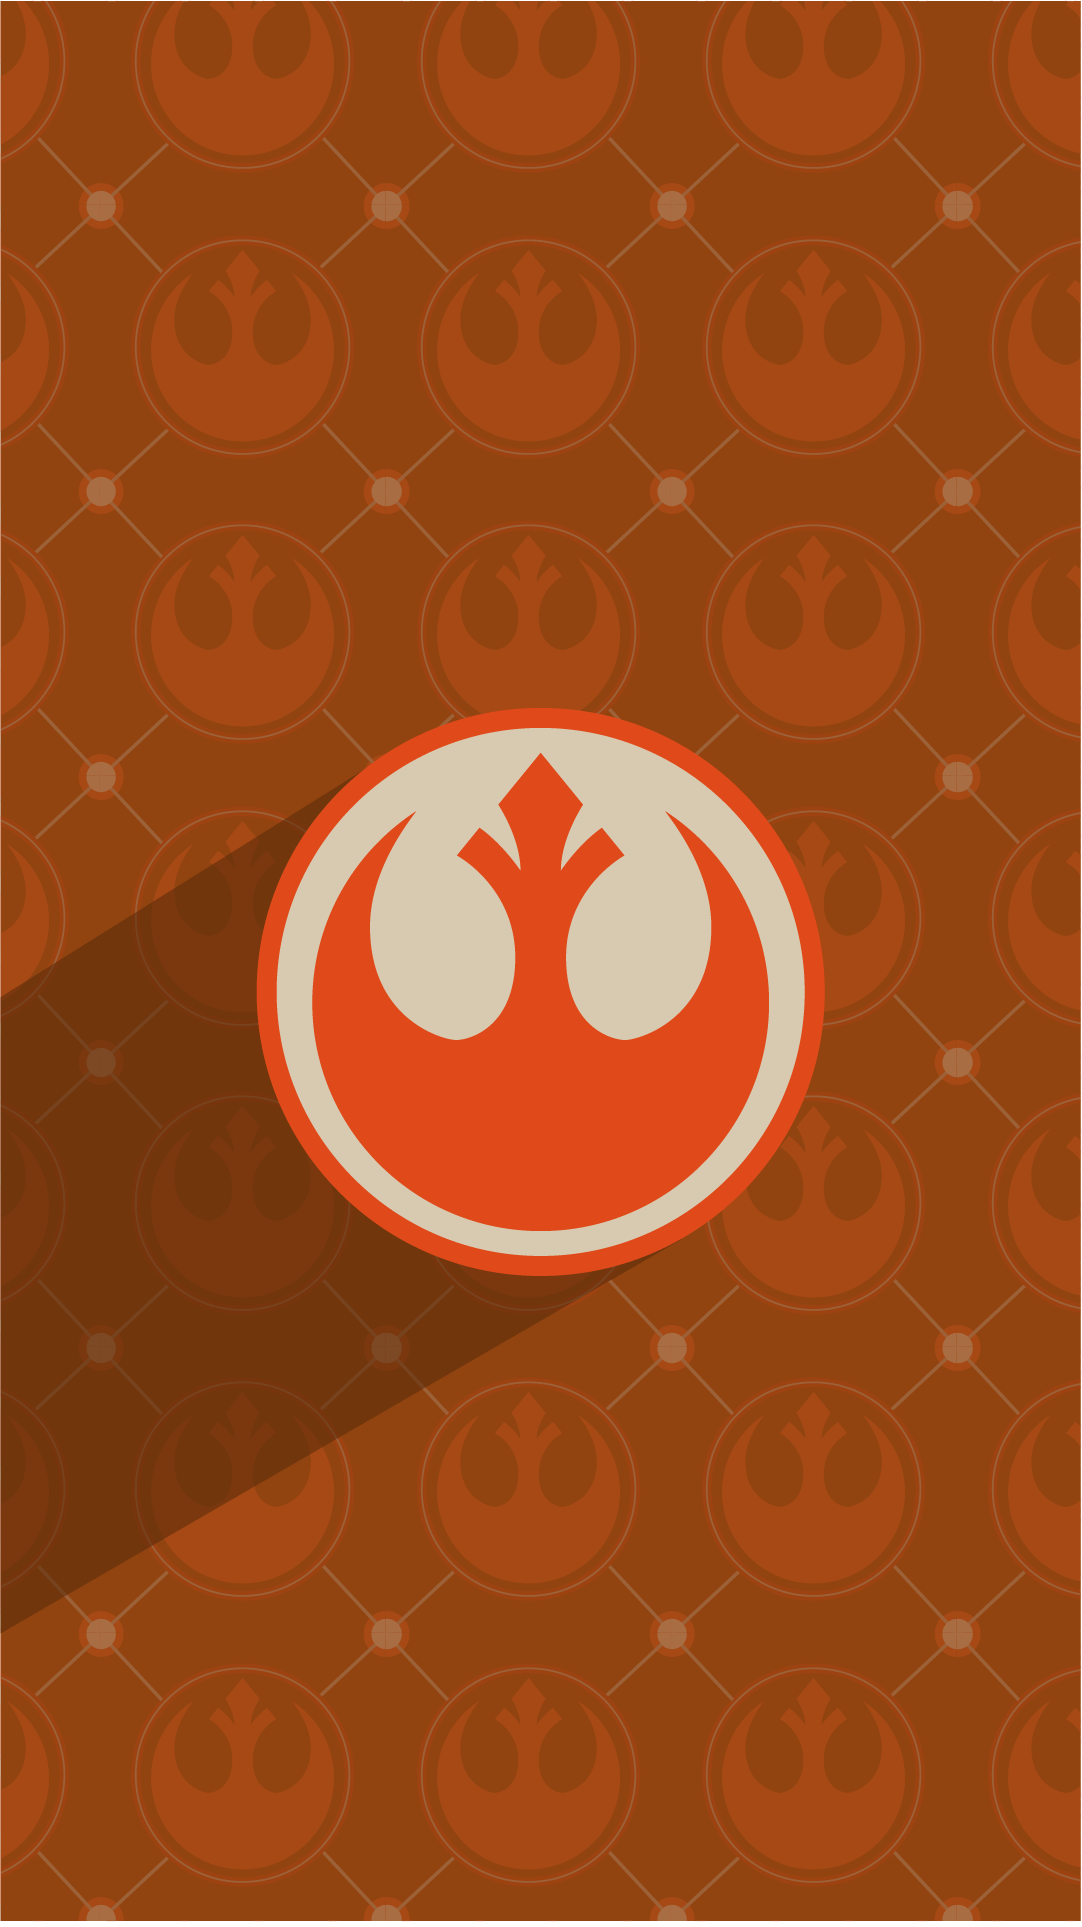 Rebel Star Wars Iphone Wallpapers Top Free Rebel Star Wars Iphone Backgrounds Wallpaperaccess